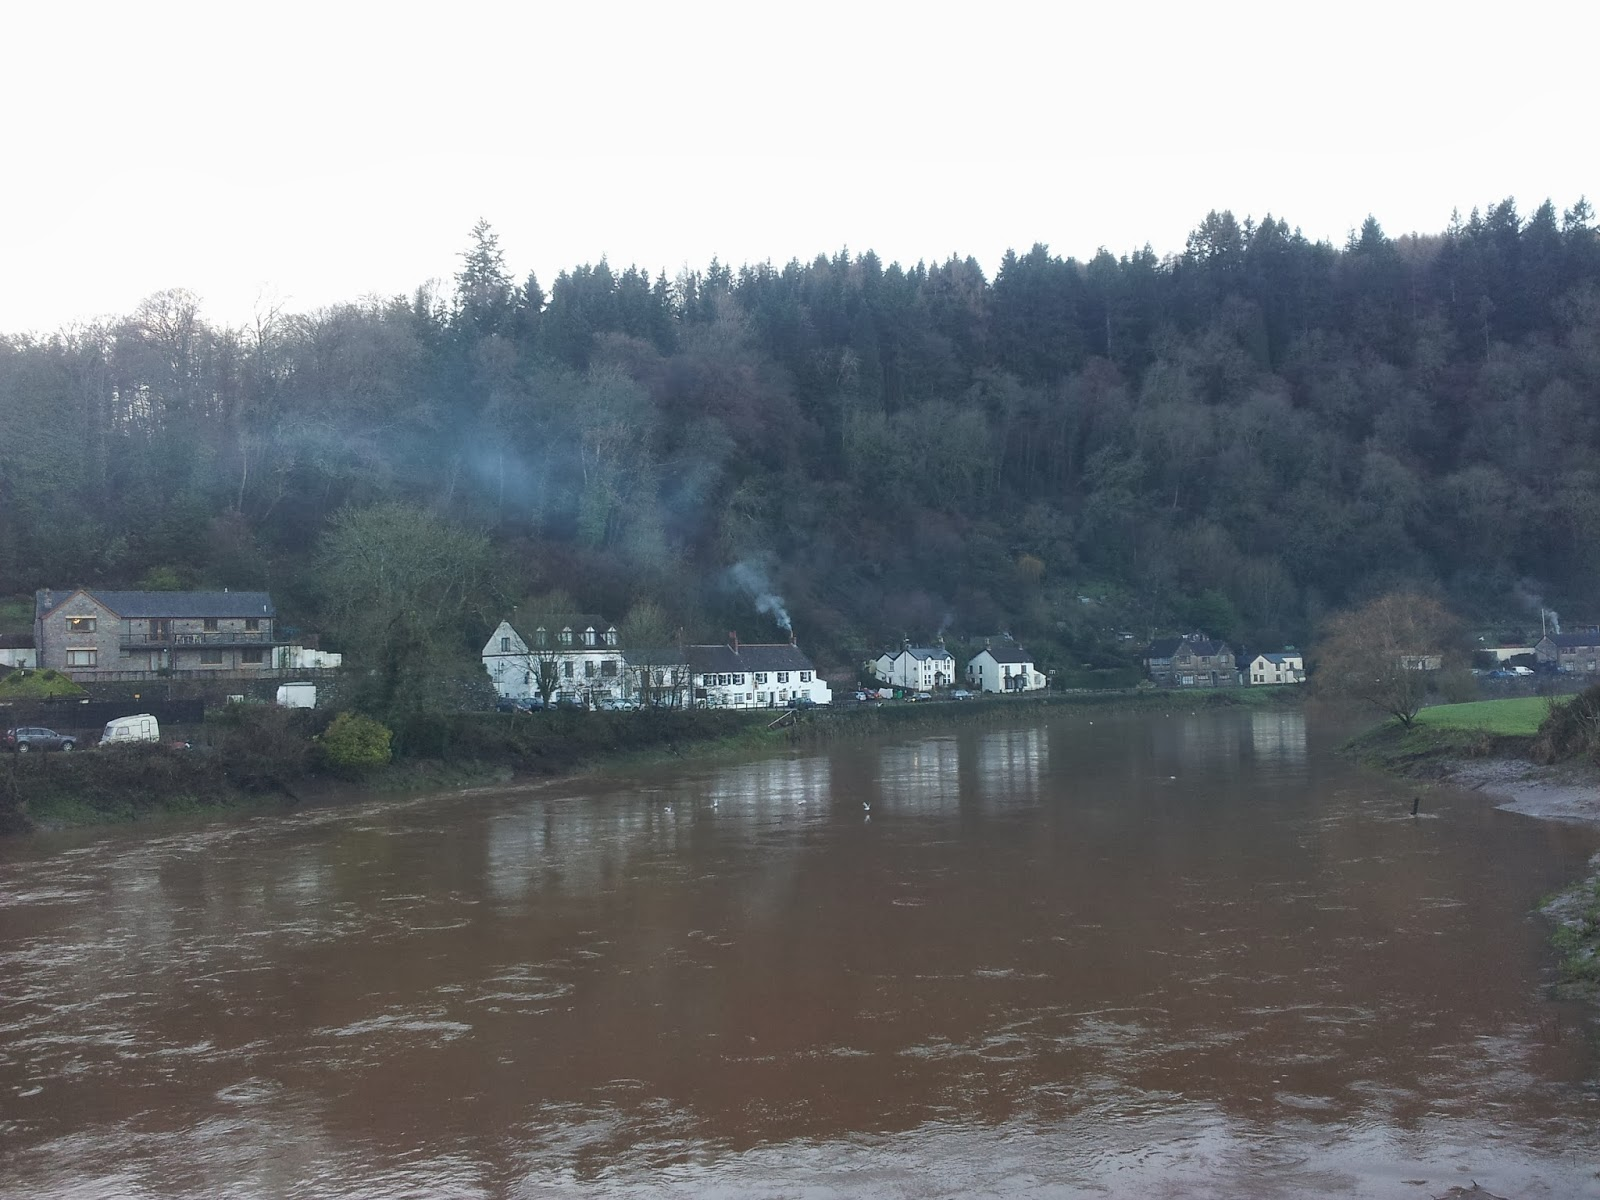 Houses on the River Wye